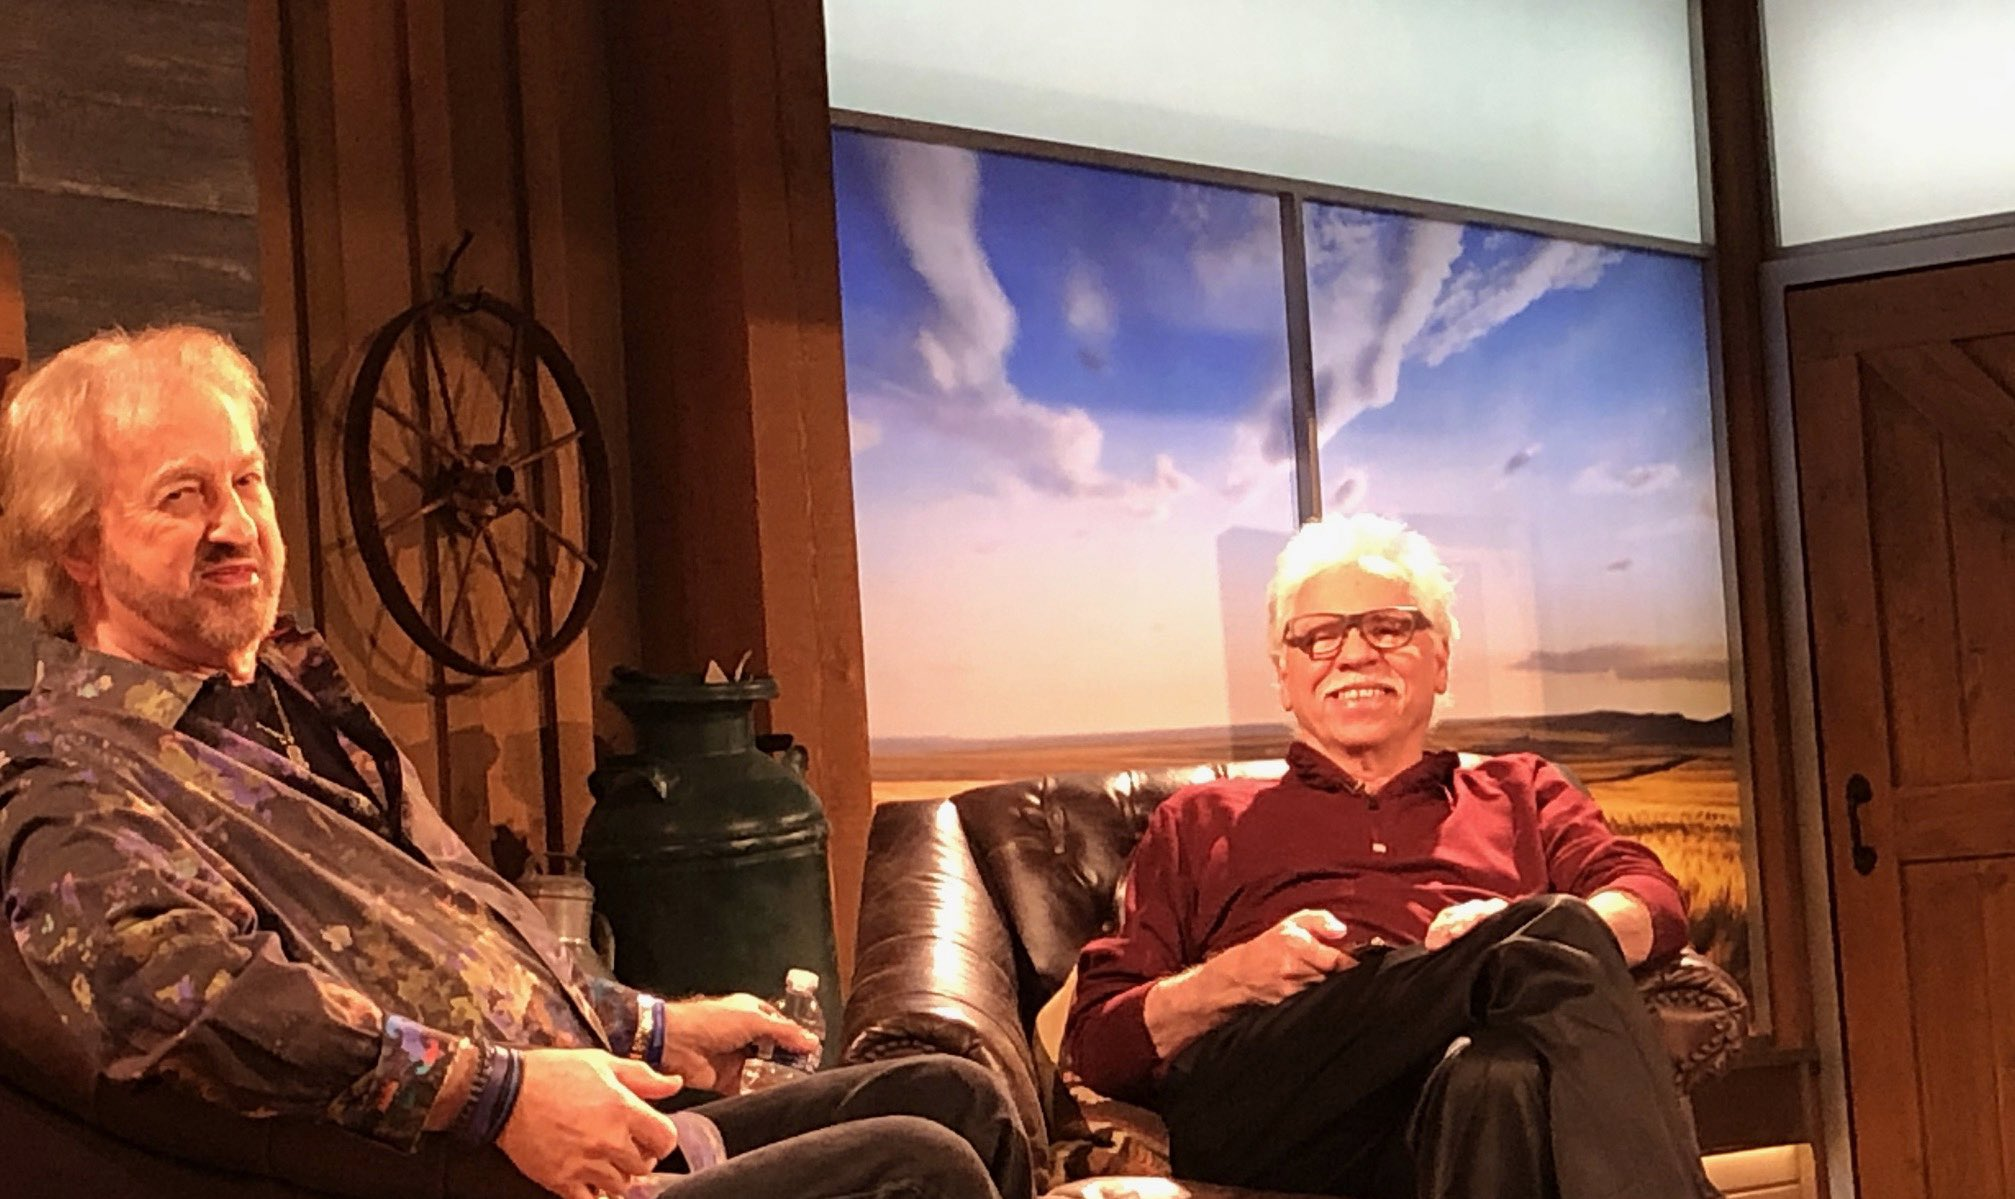 A @DivineDetour photo .... @joebonsall and The ACE @DUANEALLEN waiting for the @OfficialRFDTV show ... #RuralAmericaLive https://t.co/yok2iRfB9w